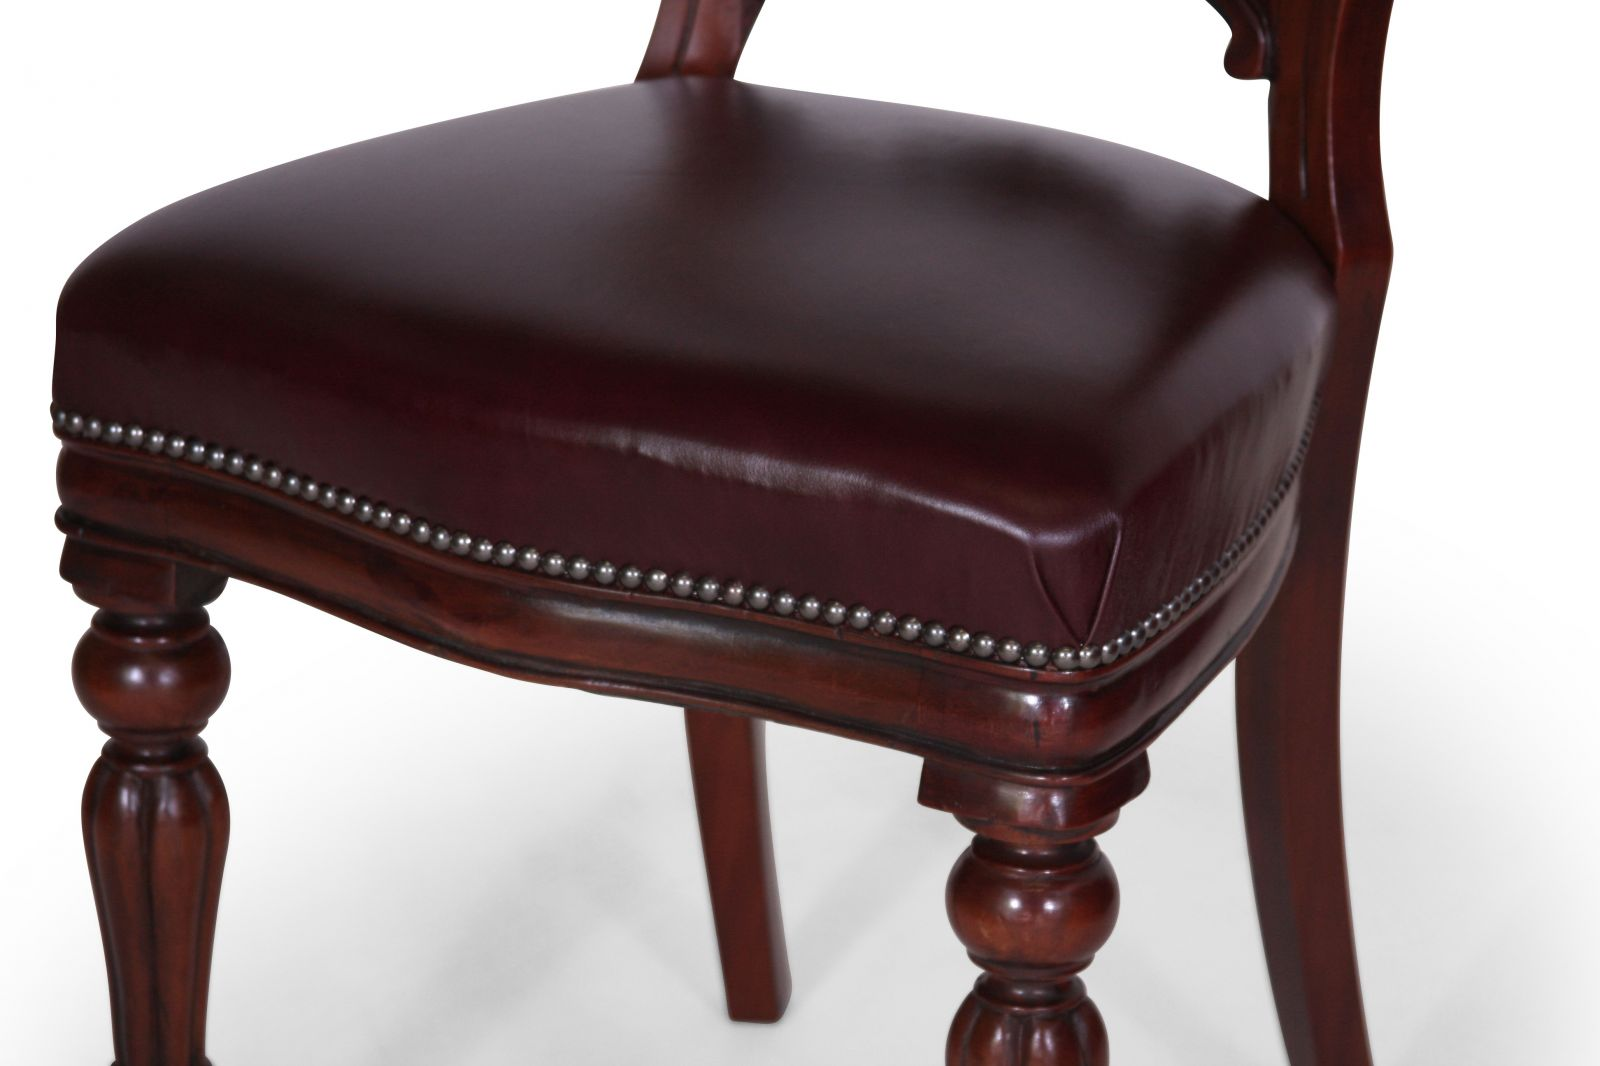 Victorian style balloon back dining chair - in Heritage Dark Oak leather